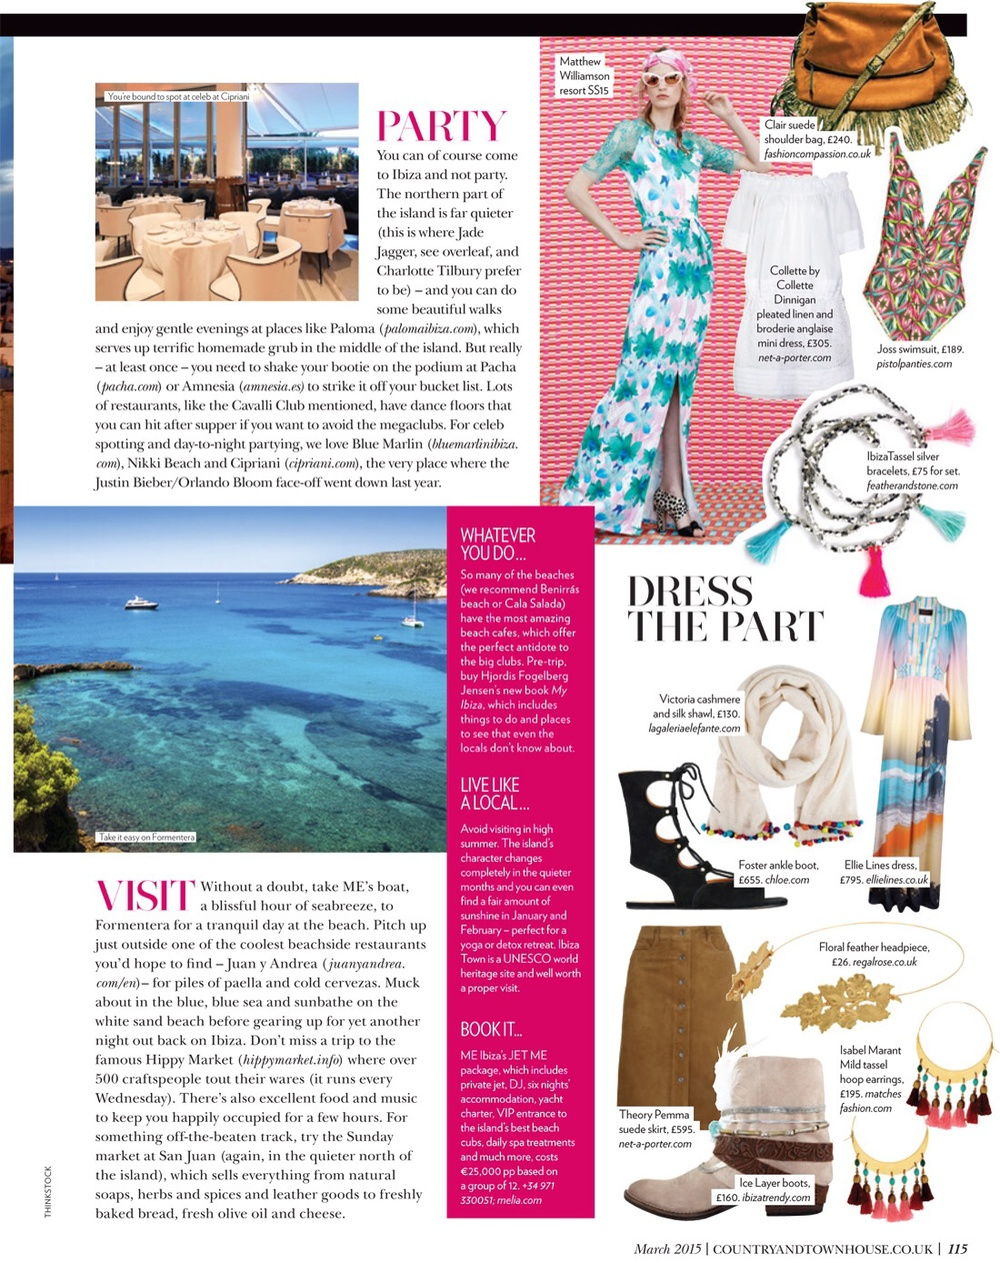 Country & Townhouse Magazine Feature include Ellie Lines' Ellie maxi dress